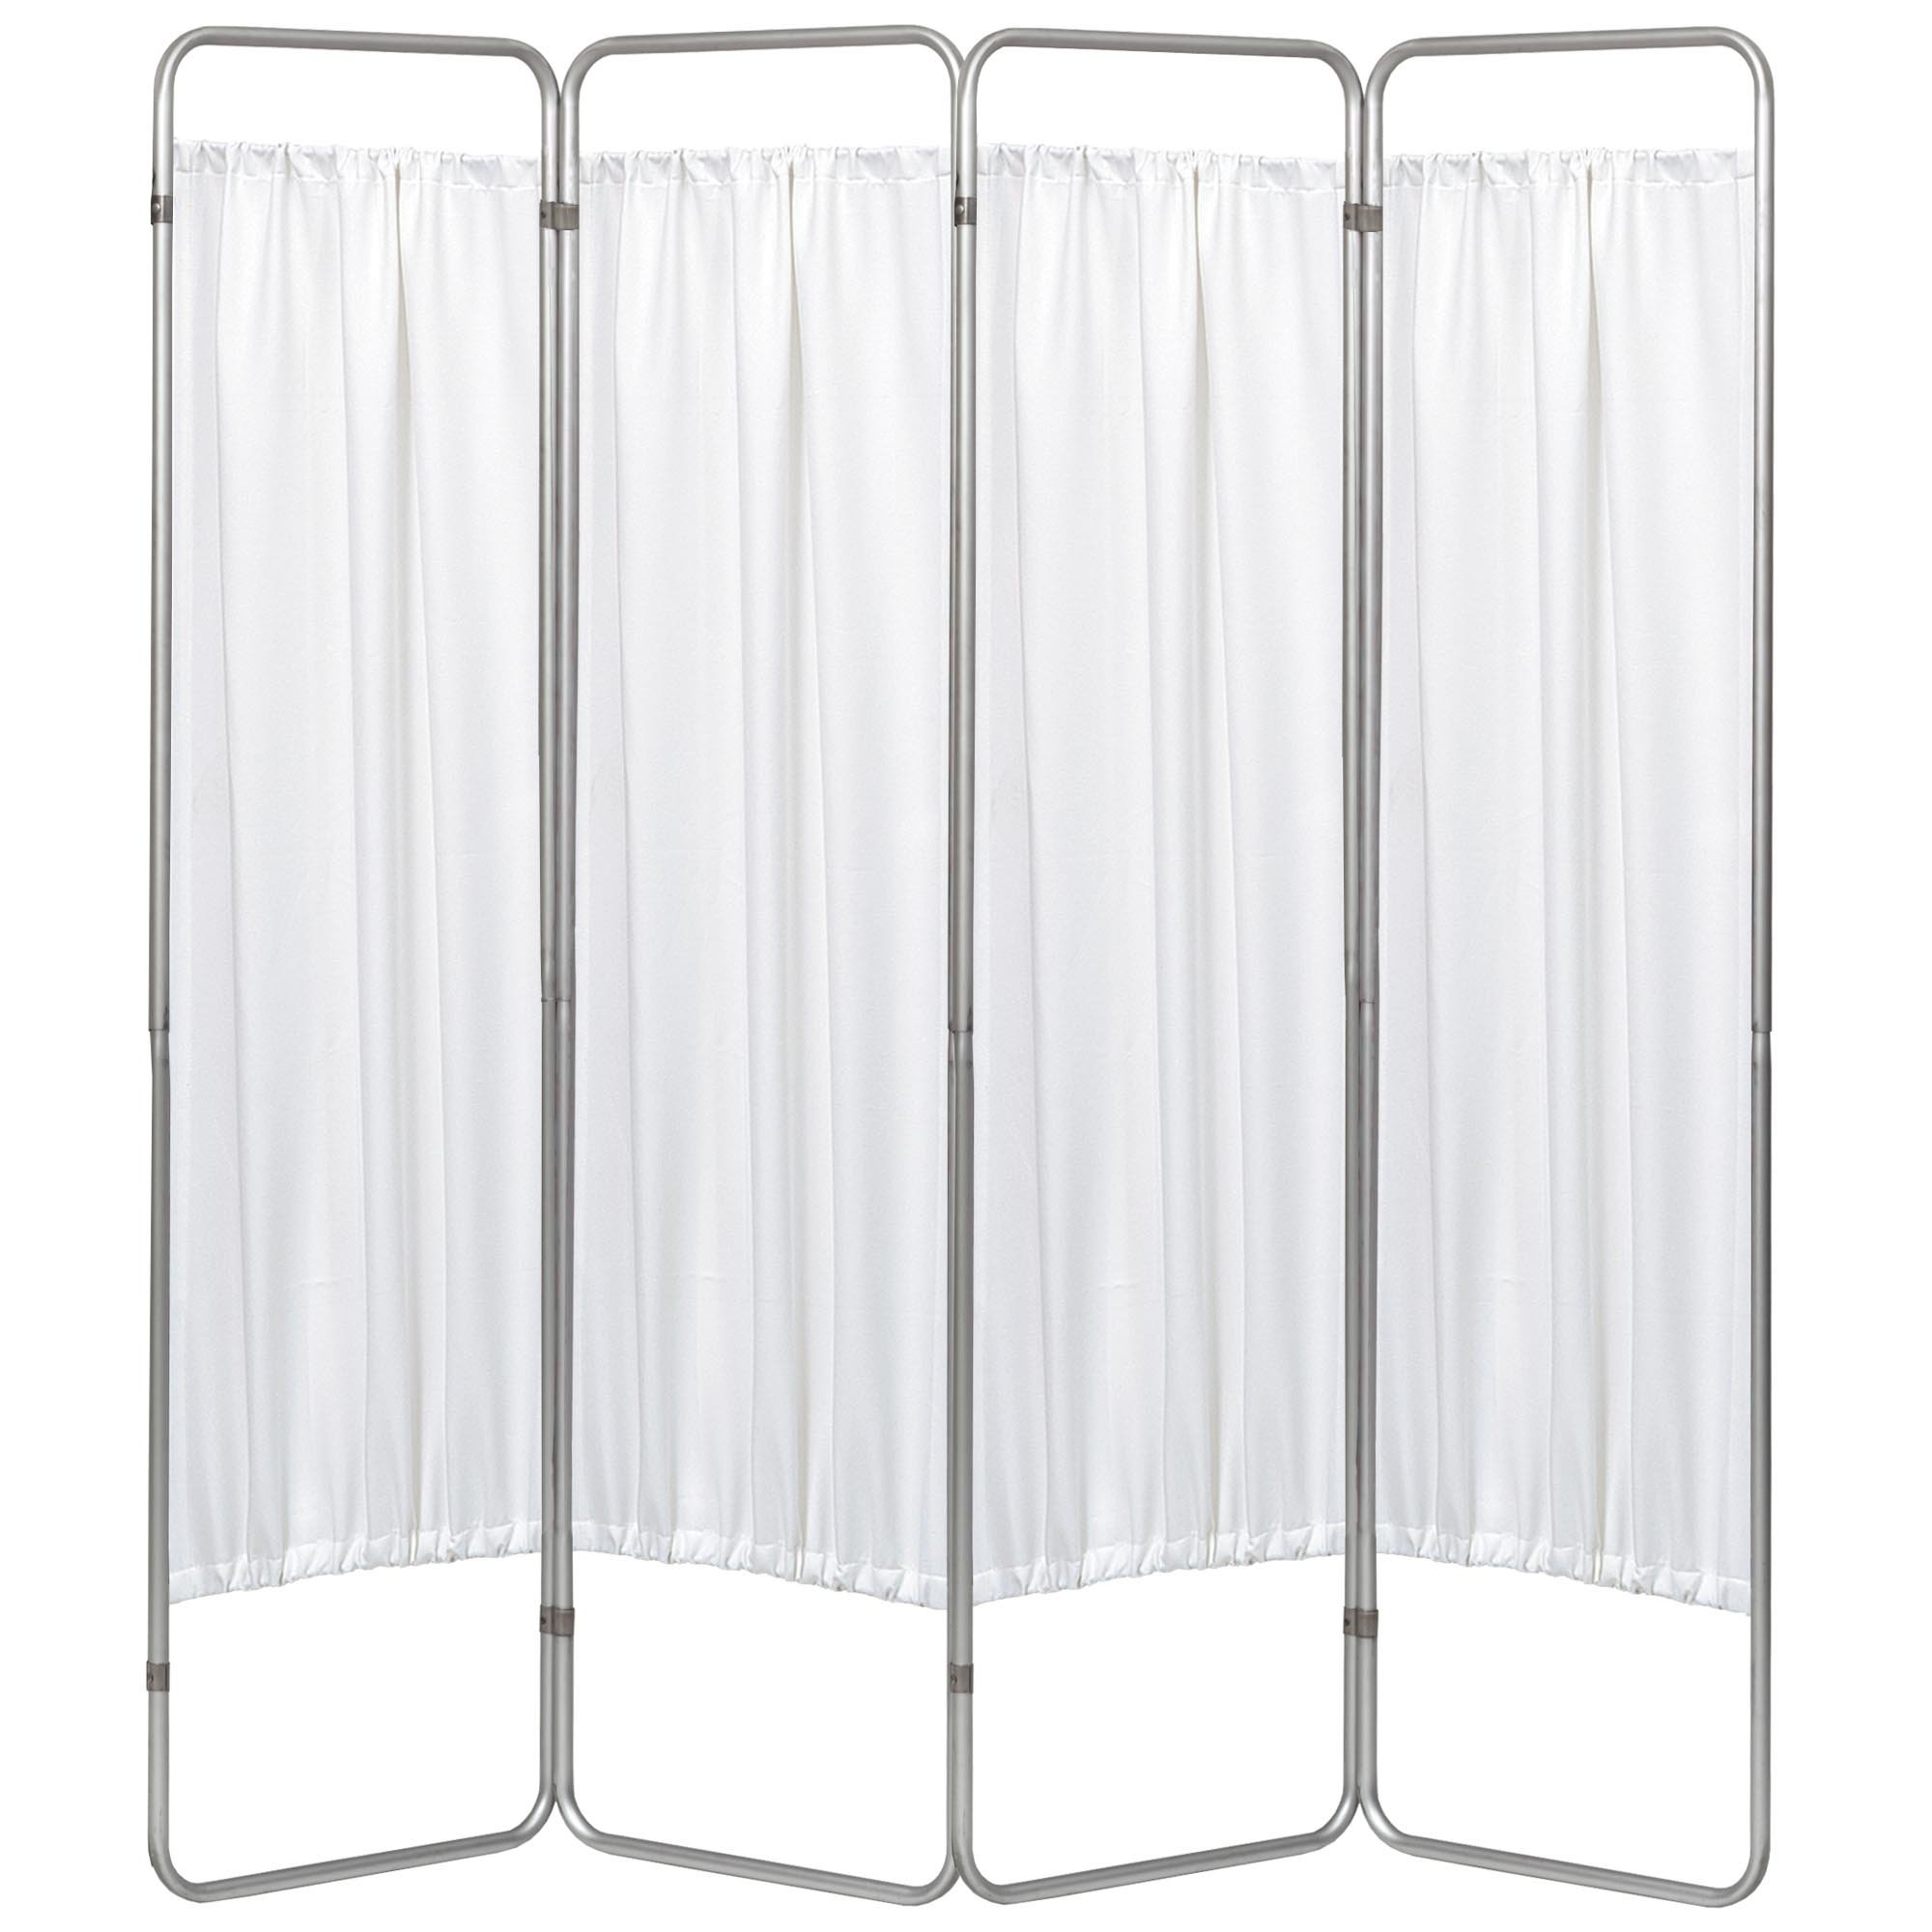 Economy 4 Section Folding Privacy Screen - White Vinyl Screen Panel